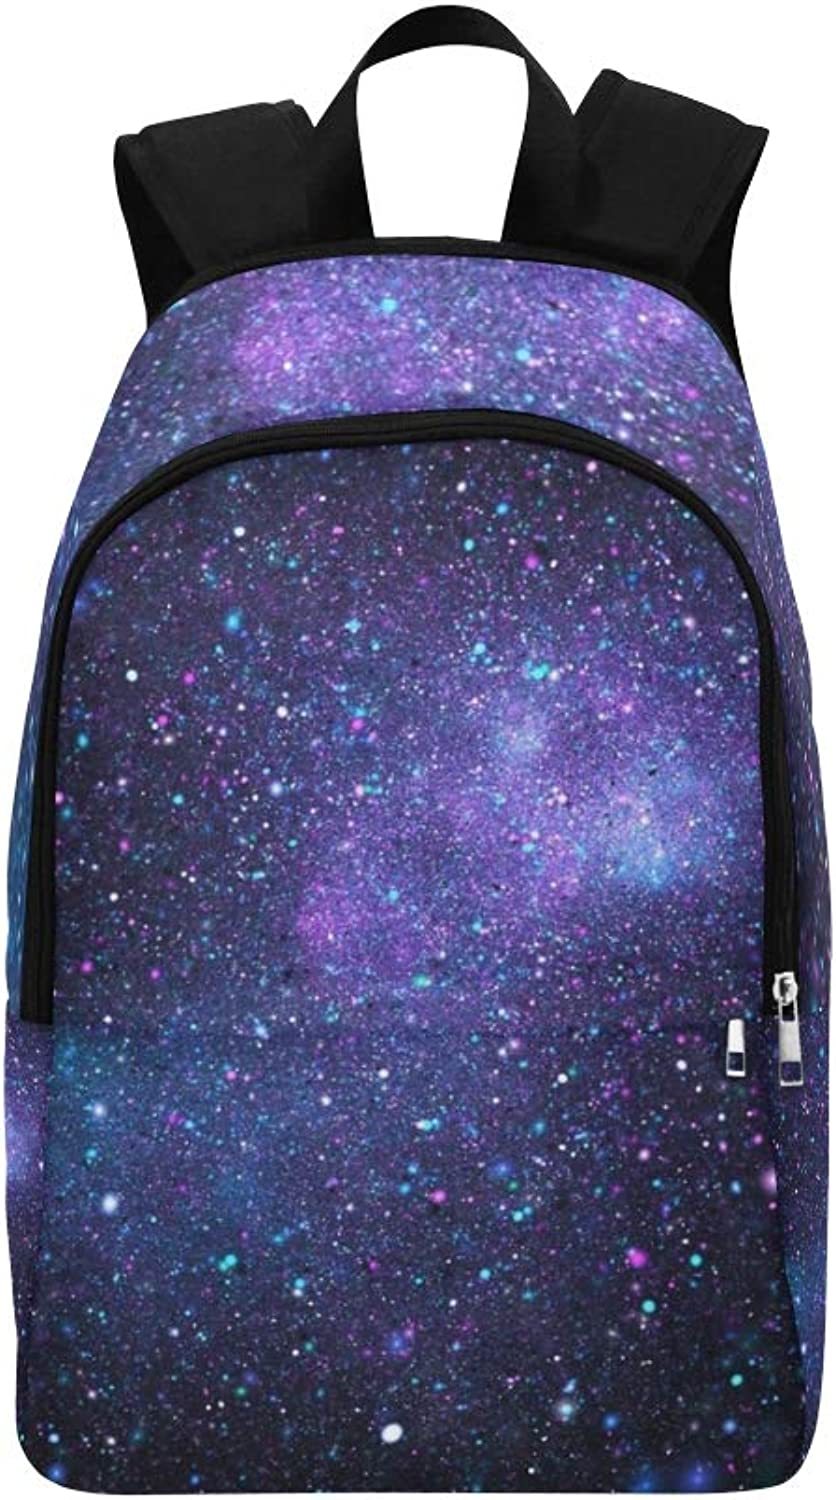 Bright Galaxy Abstract Stars On Black Casual Daypack Travel Bag College School Backpack for Mens and Women